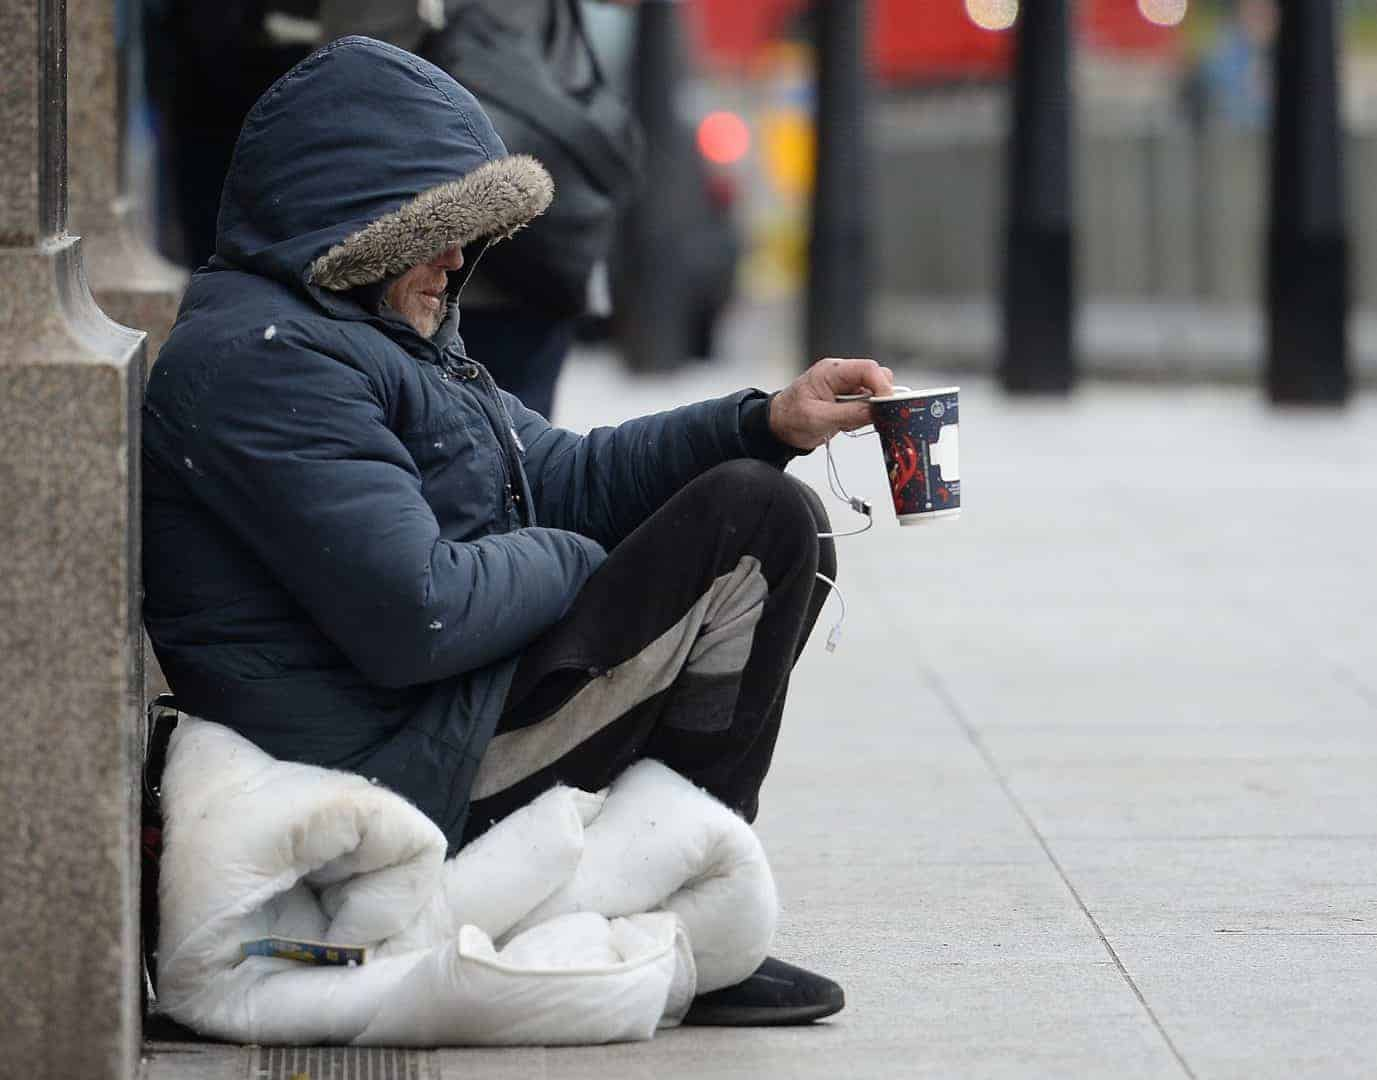 'Homeless people must be housed by the weekend'